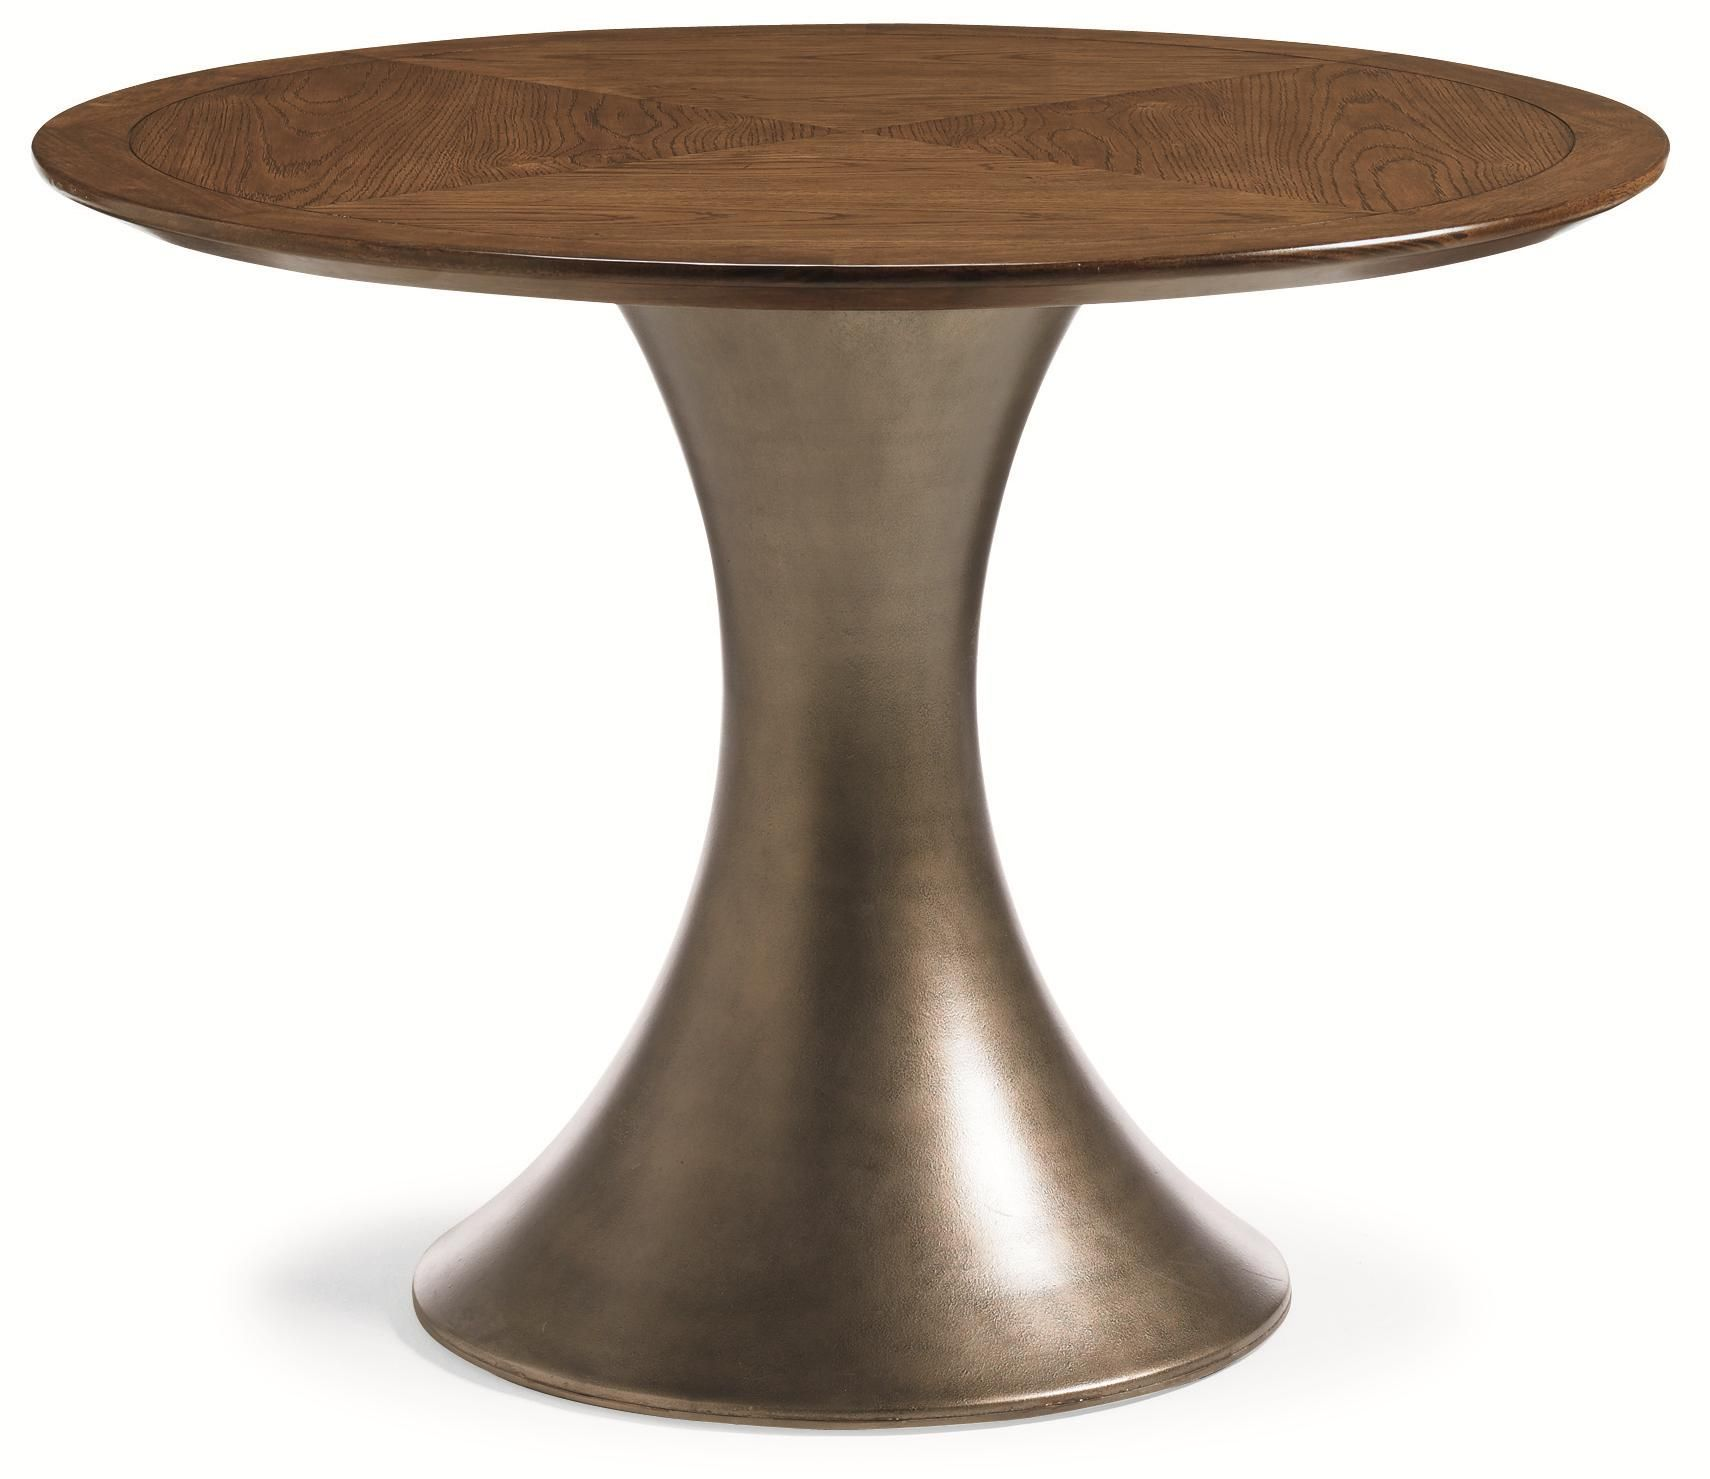 River run round metal pedestal dining table by schnadig for Wood coffee table kits